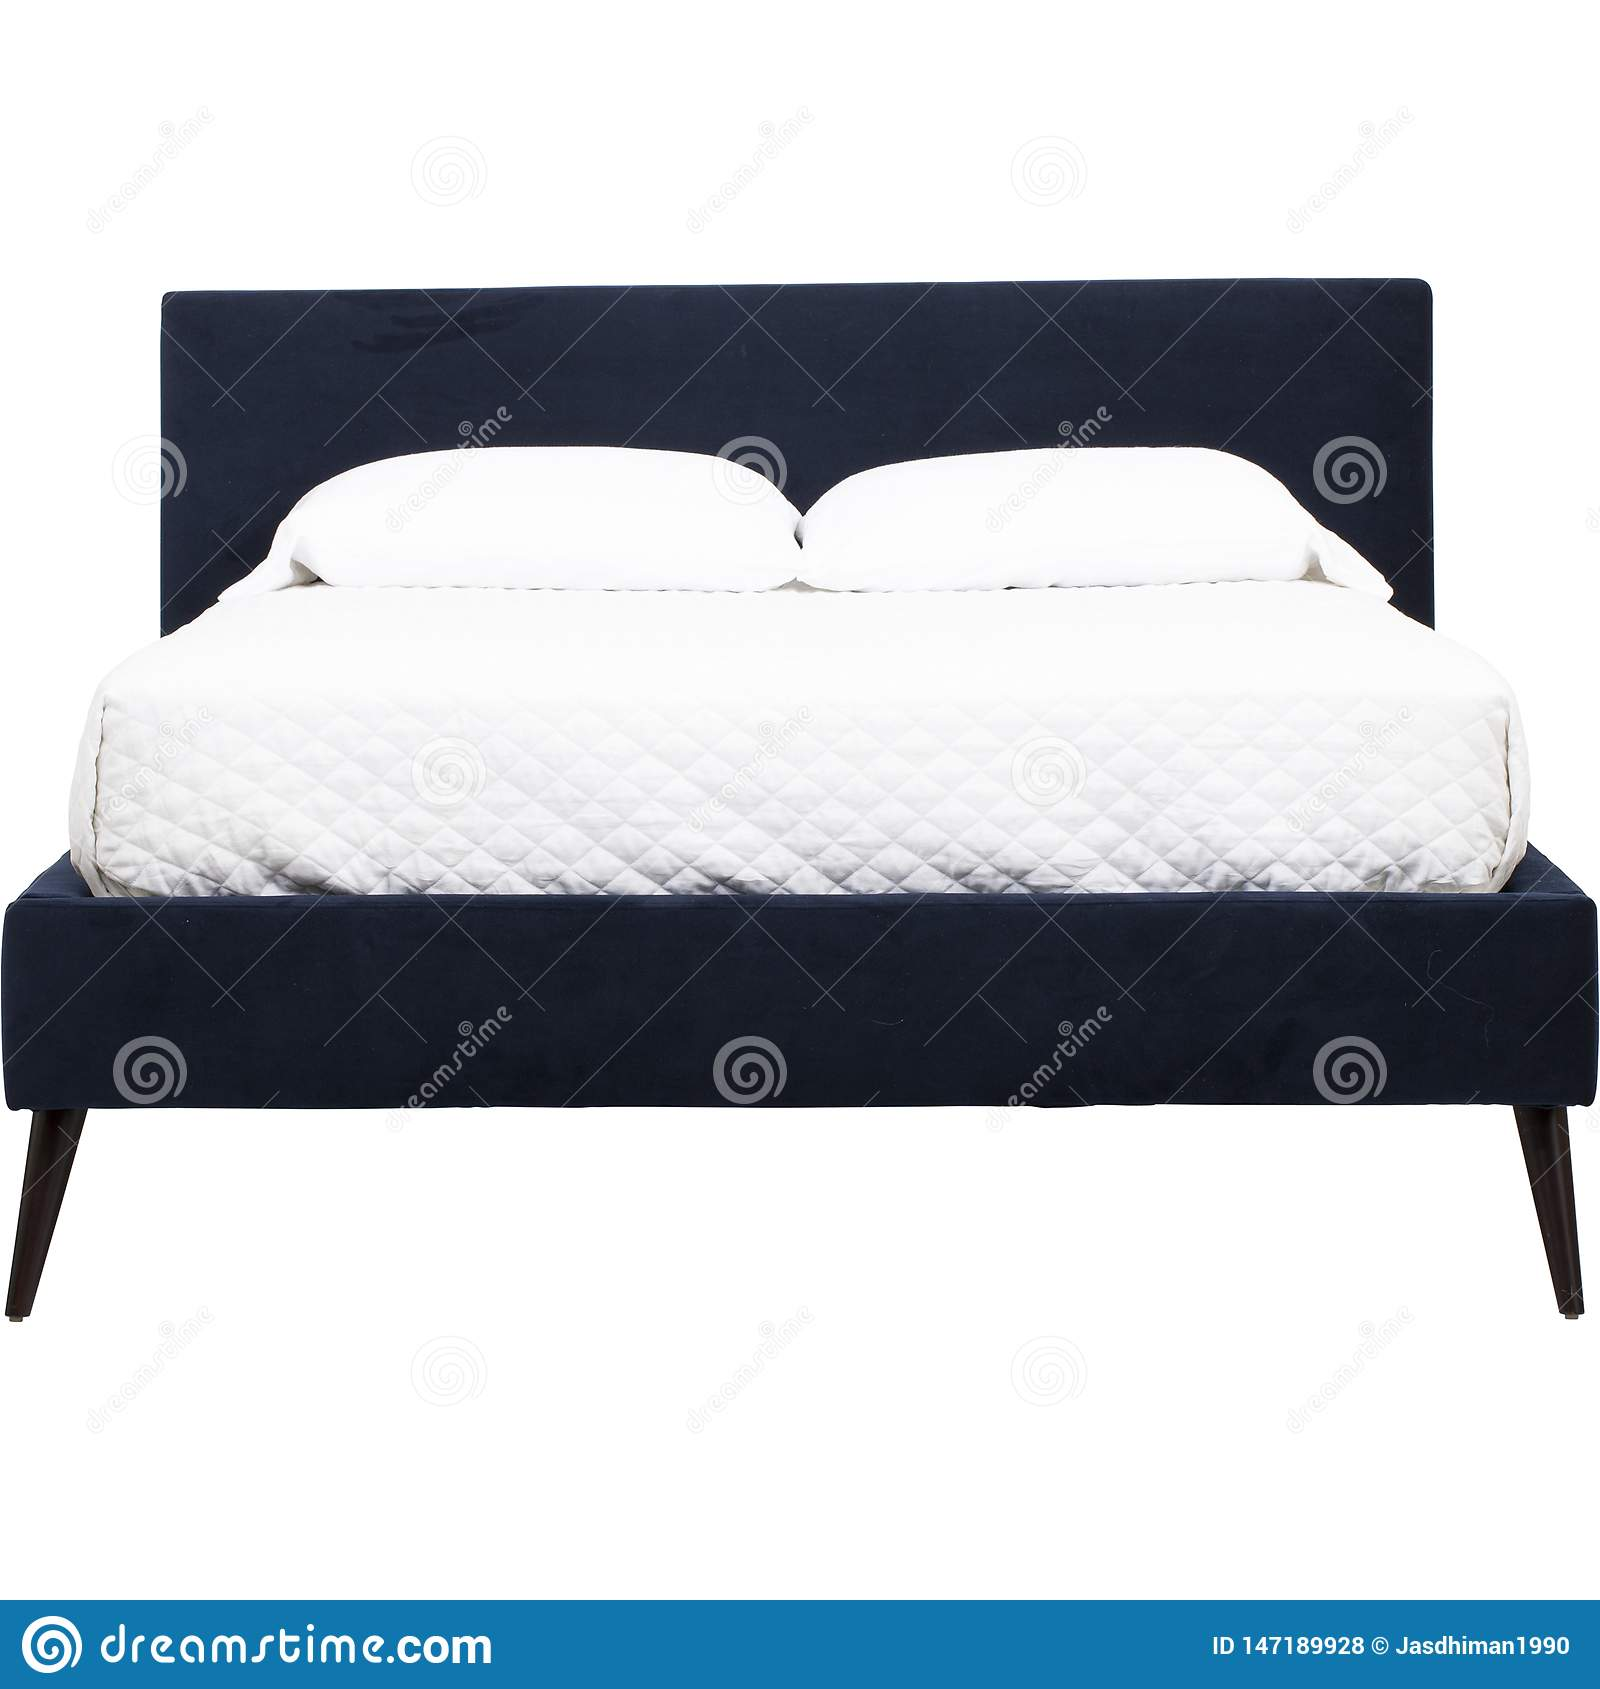 Picture of: Palazzo Queen Size Bed With White Mattress Low Profile Bed Frame Low Profile Queen Tufted Bed Frame King With White Background Stock Photo Image Of Classic Delicate 147189928